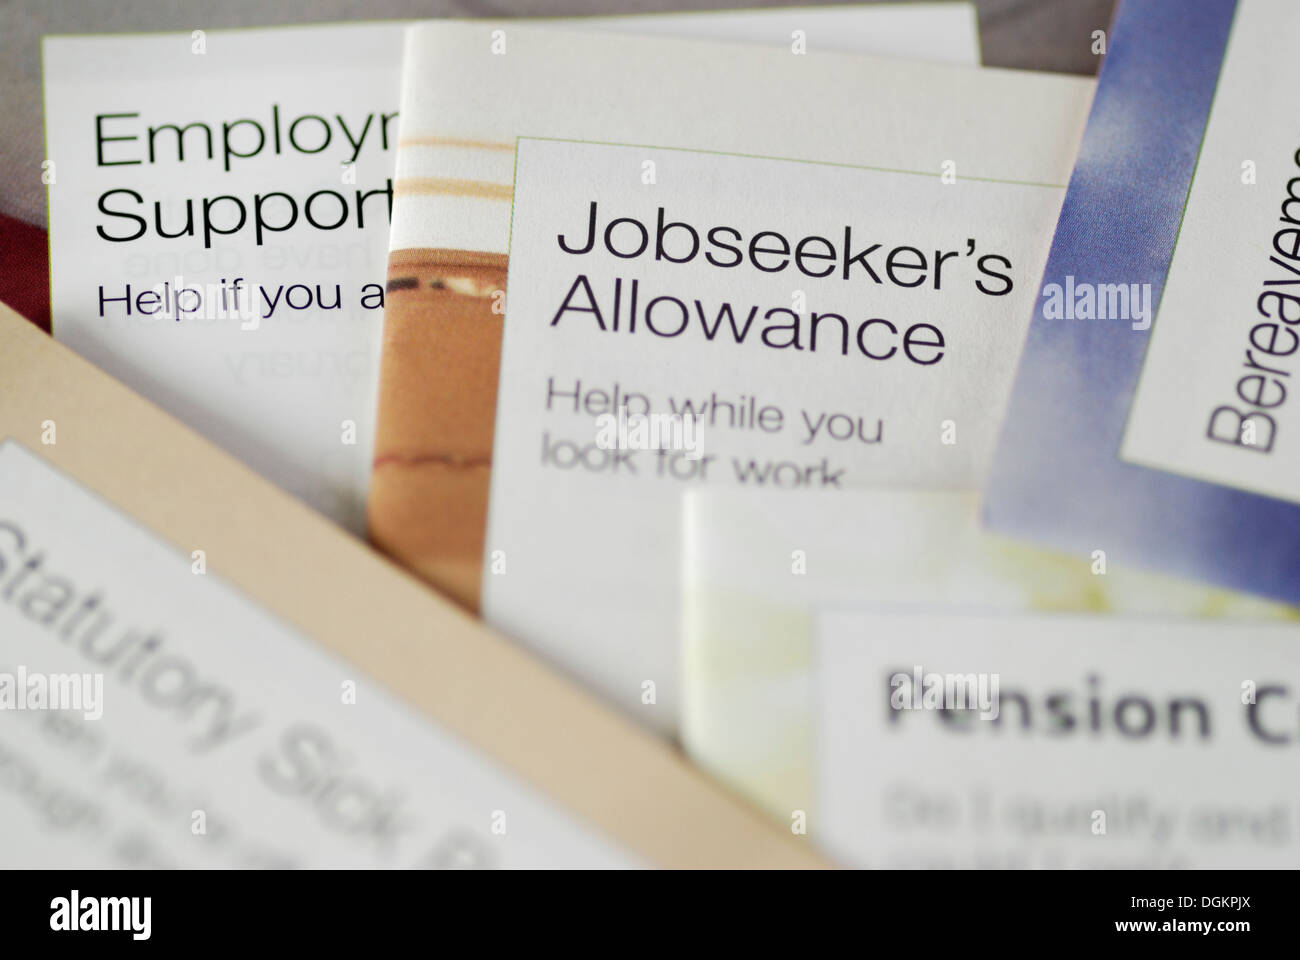 Leaflets about UK government benefits and allowances. - Stock Image